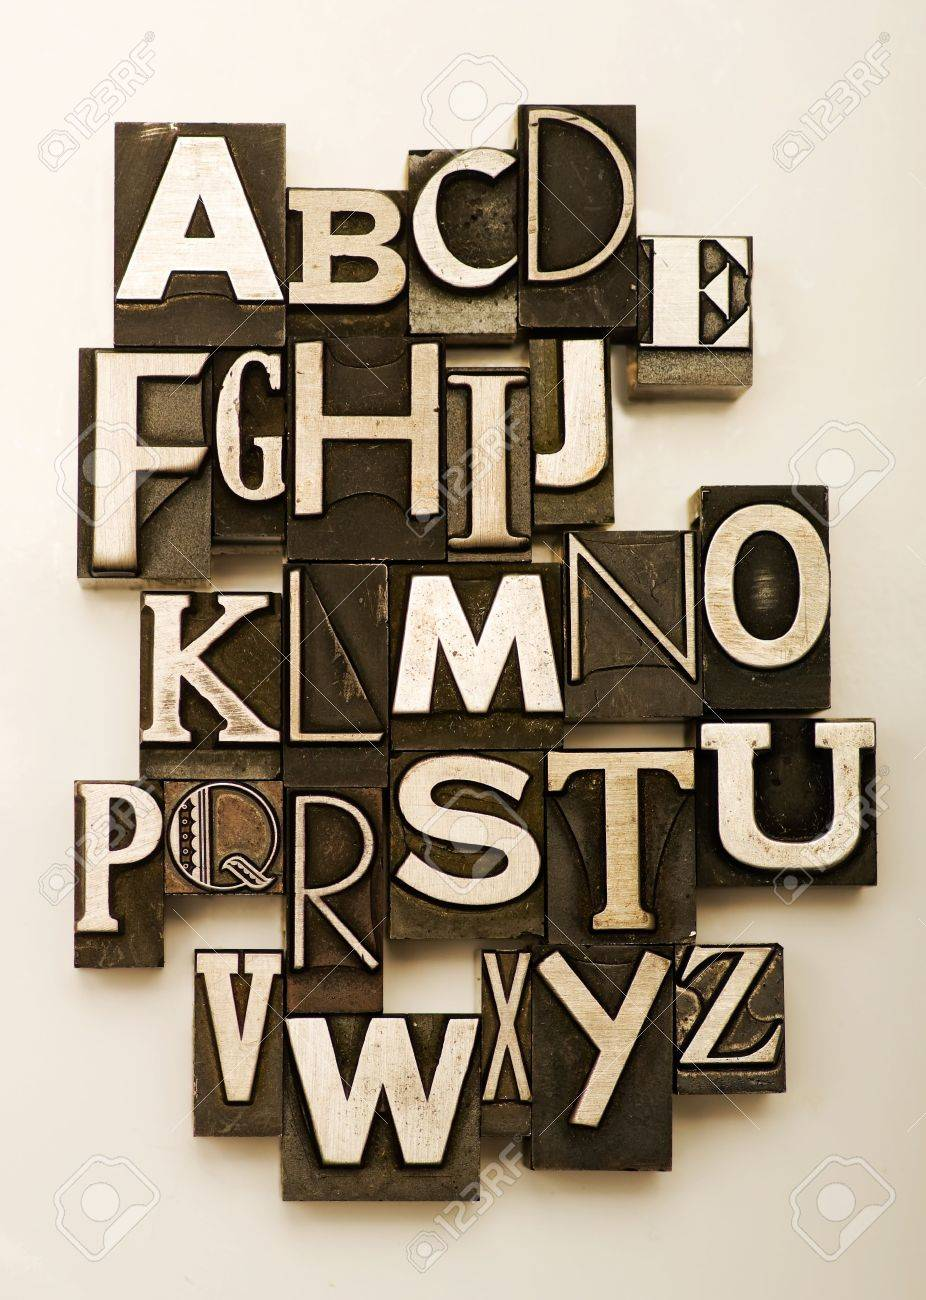 Alphabet photographed using a mix of vintage letterpress characters. Cross-proccessed for a vintage look. Stock Photo - 3440600